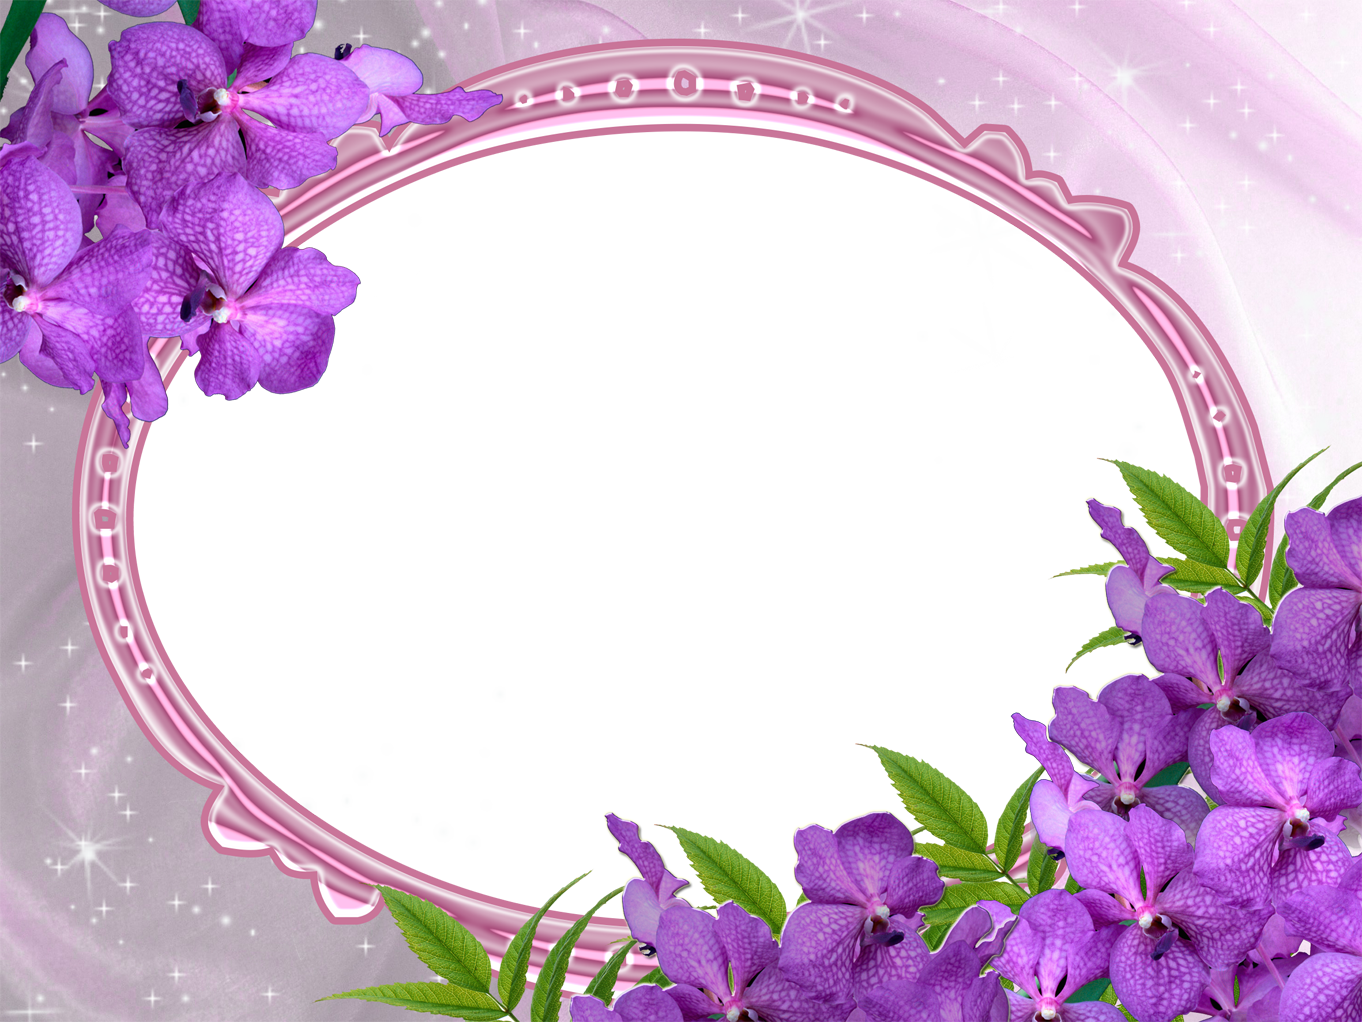 Purple Wedding Png - Purple wedding photo frame png #24598 - Free Icons and PNG Backgrounds